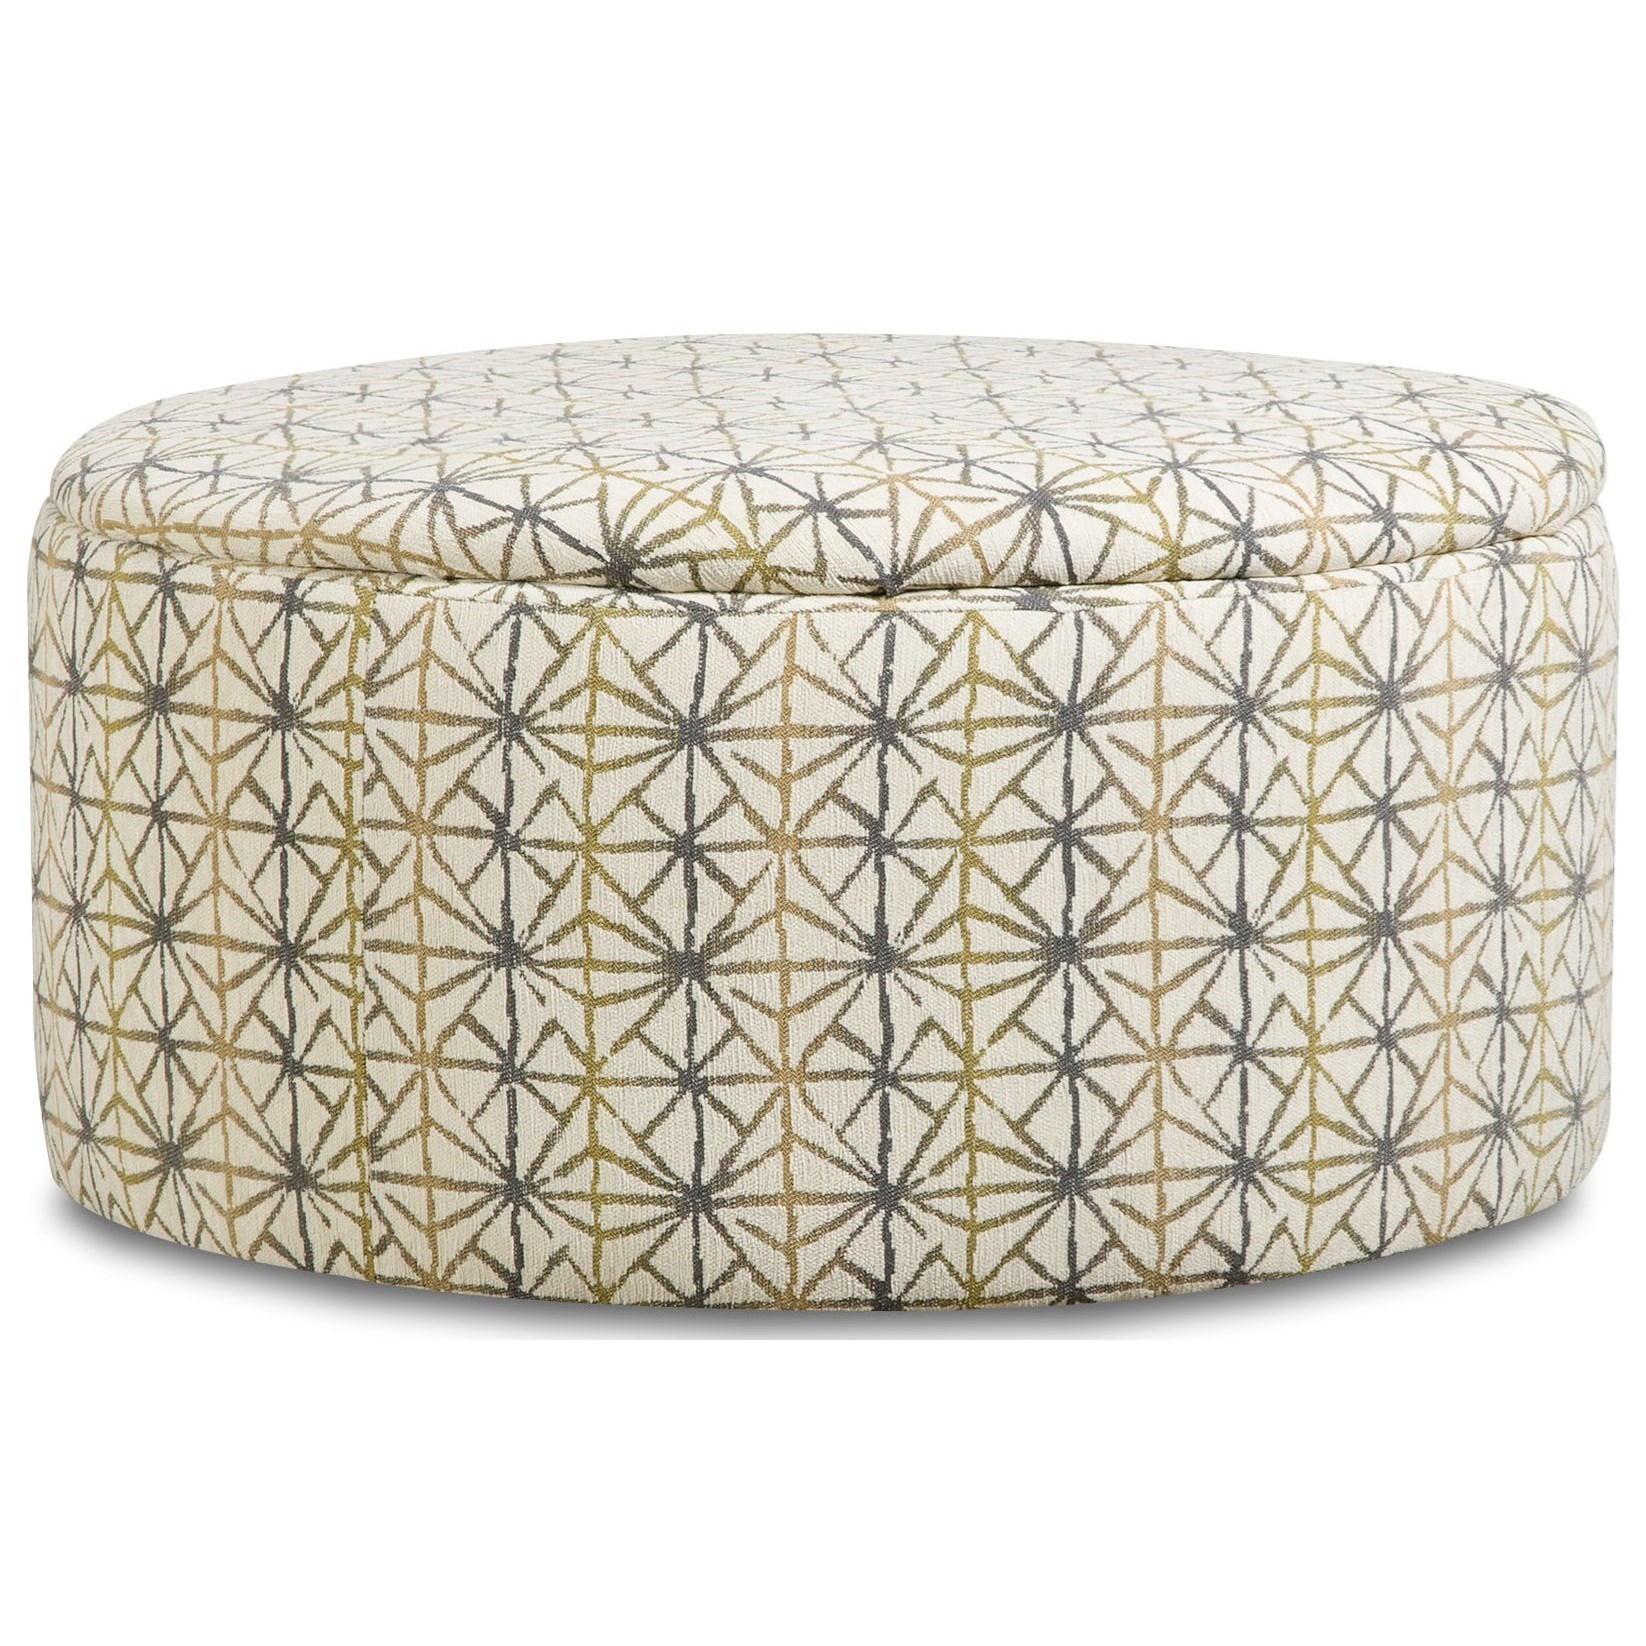 29C0 Round Storage Ottoman by Corinthian at Story & Lee Furniture